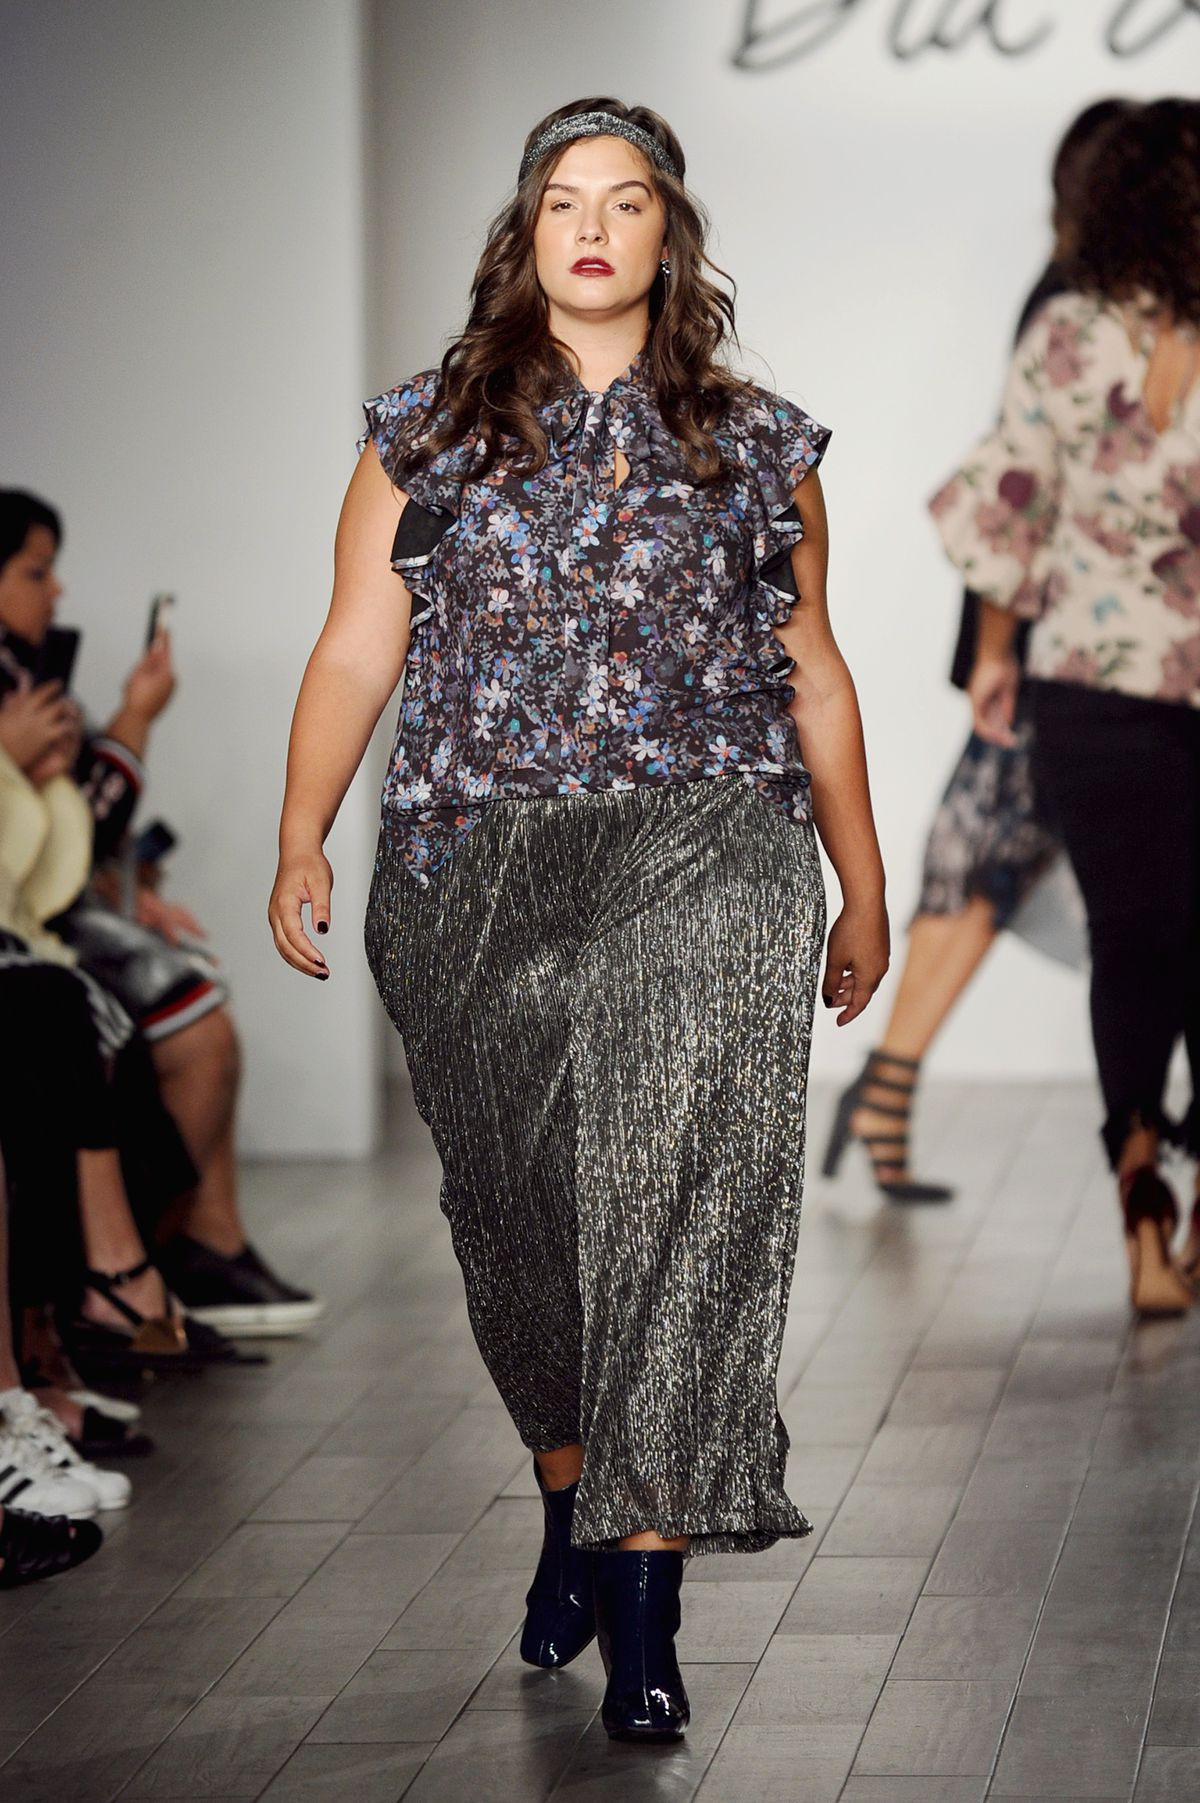 A plus-size model at the Dia & Co. fashion show